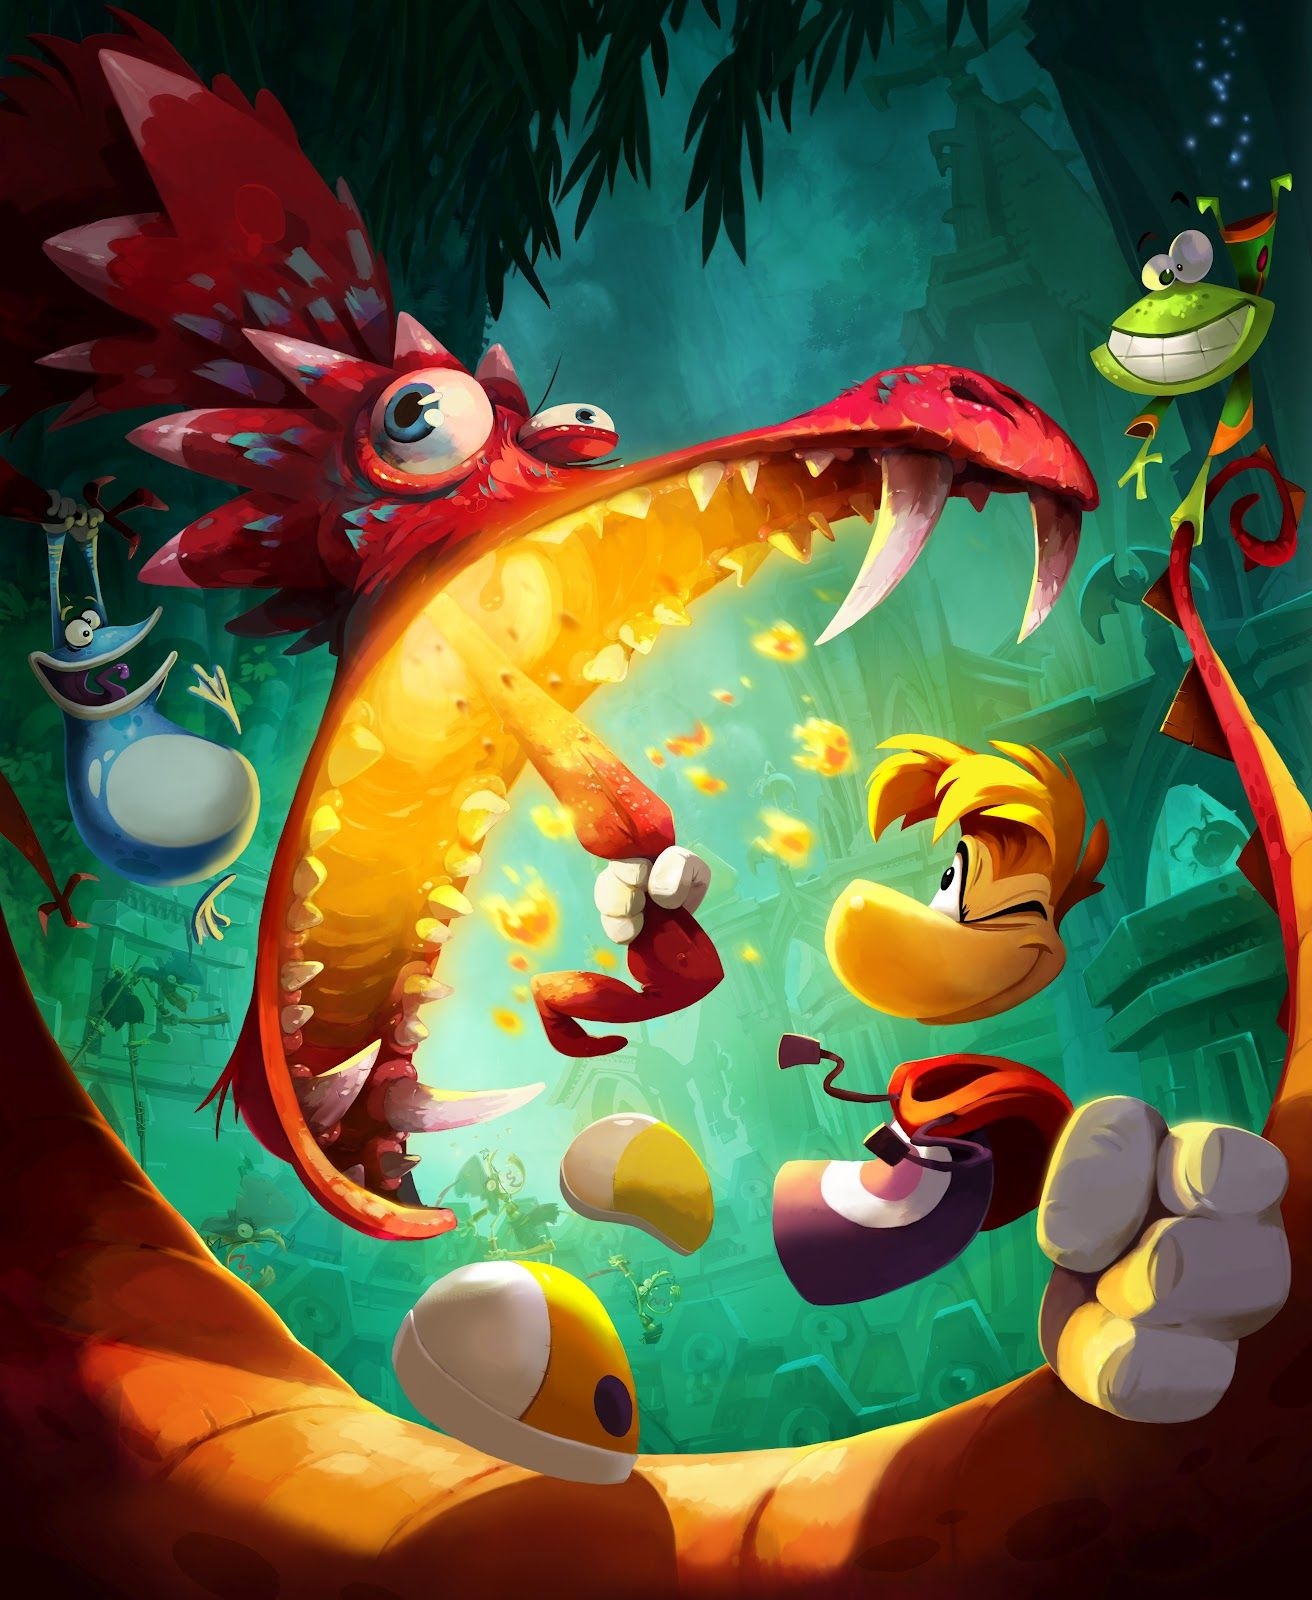 Rayman demonstrates one way to roast sausage links. Oh, sorry, that's the dragon's tongue. Carry on.